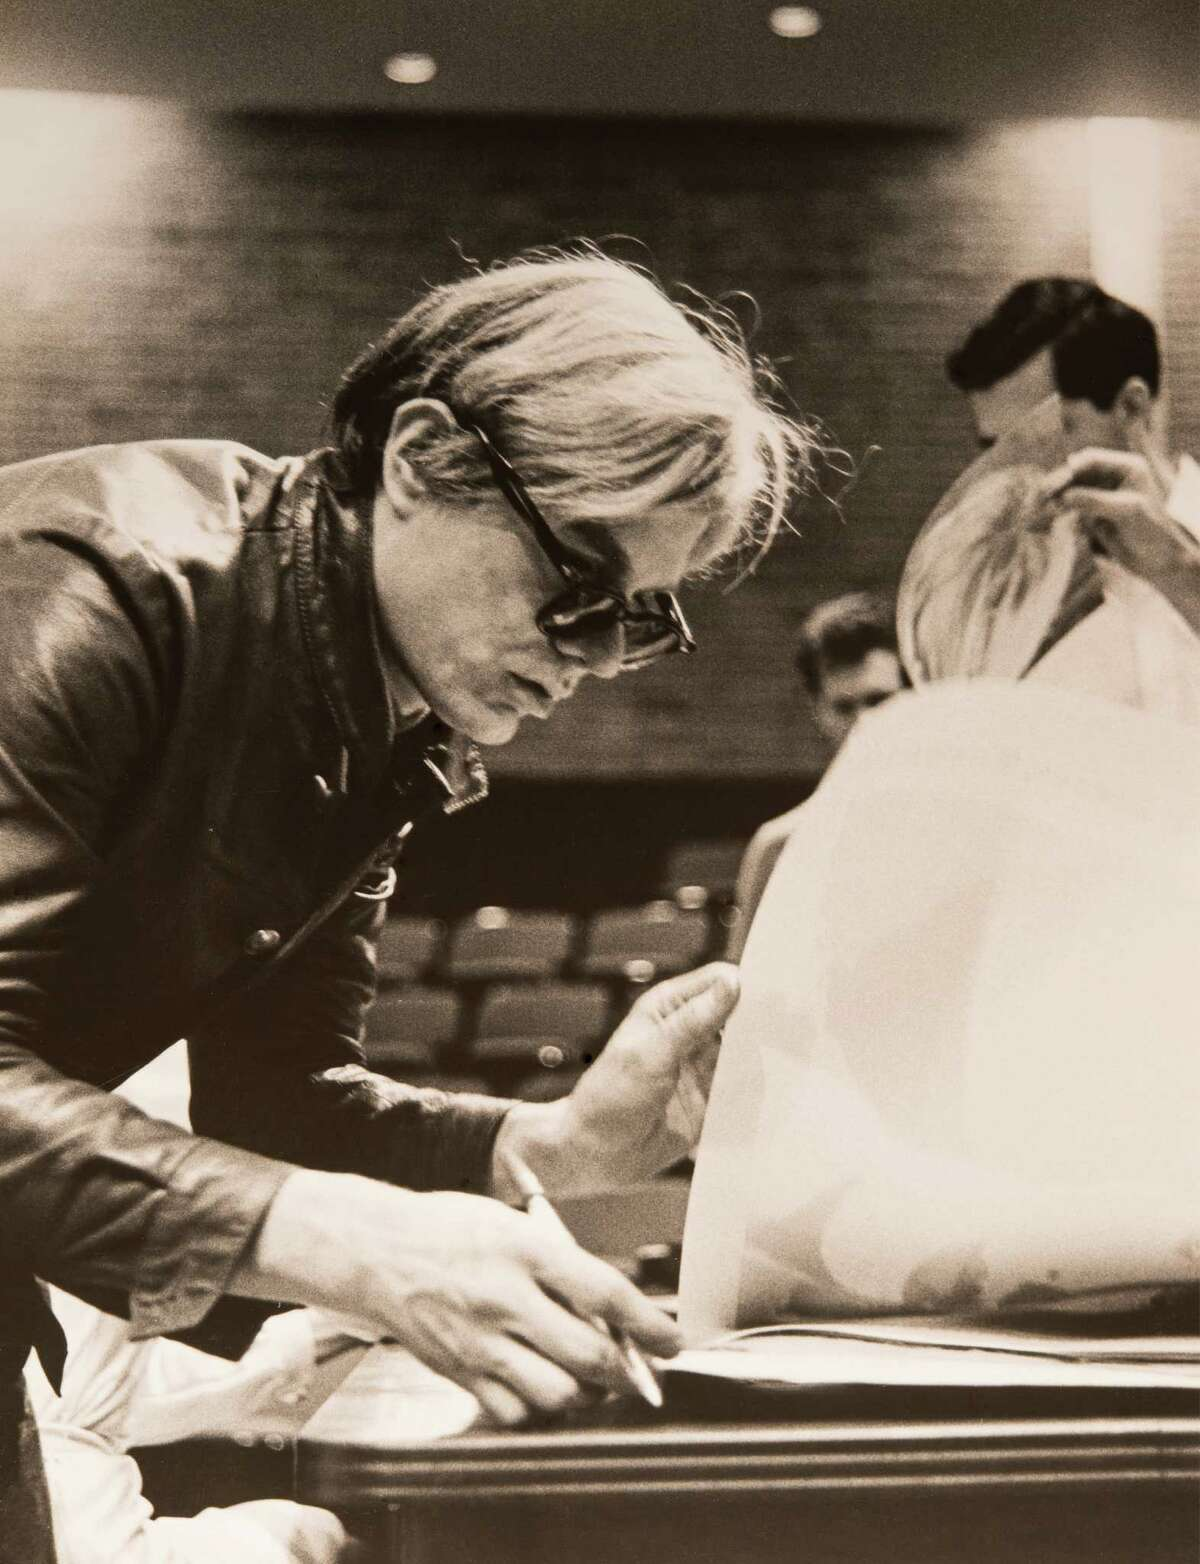 Andy Warhol signing posters, University of St. Thomas, Houston, 1968.